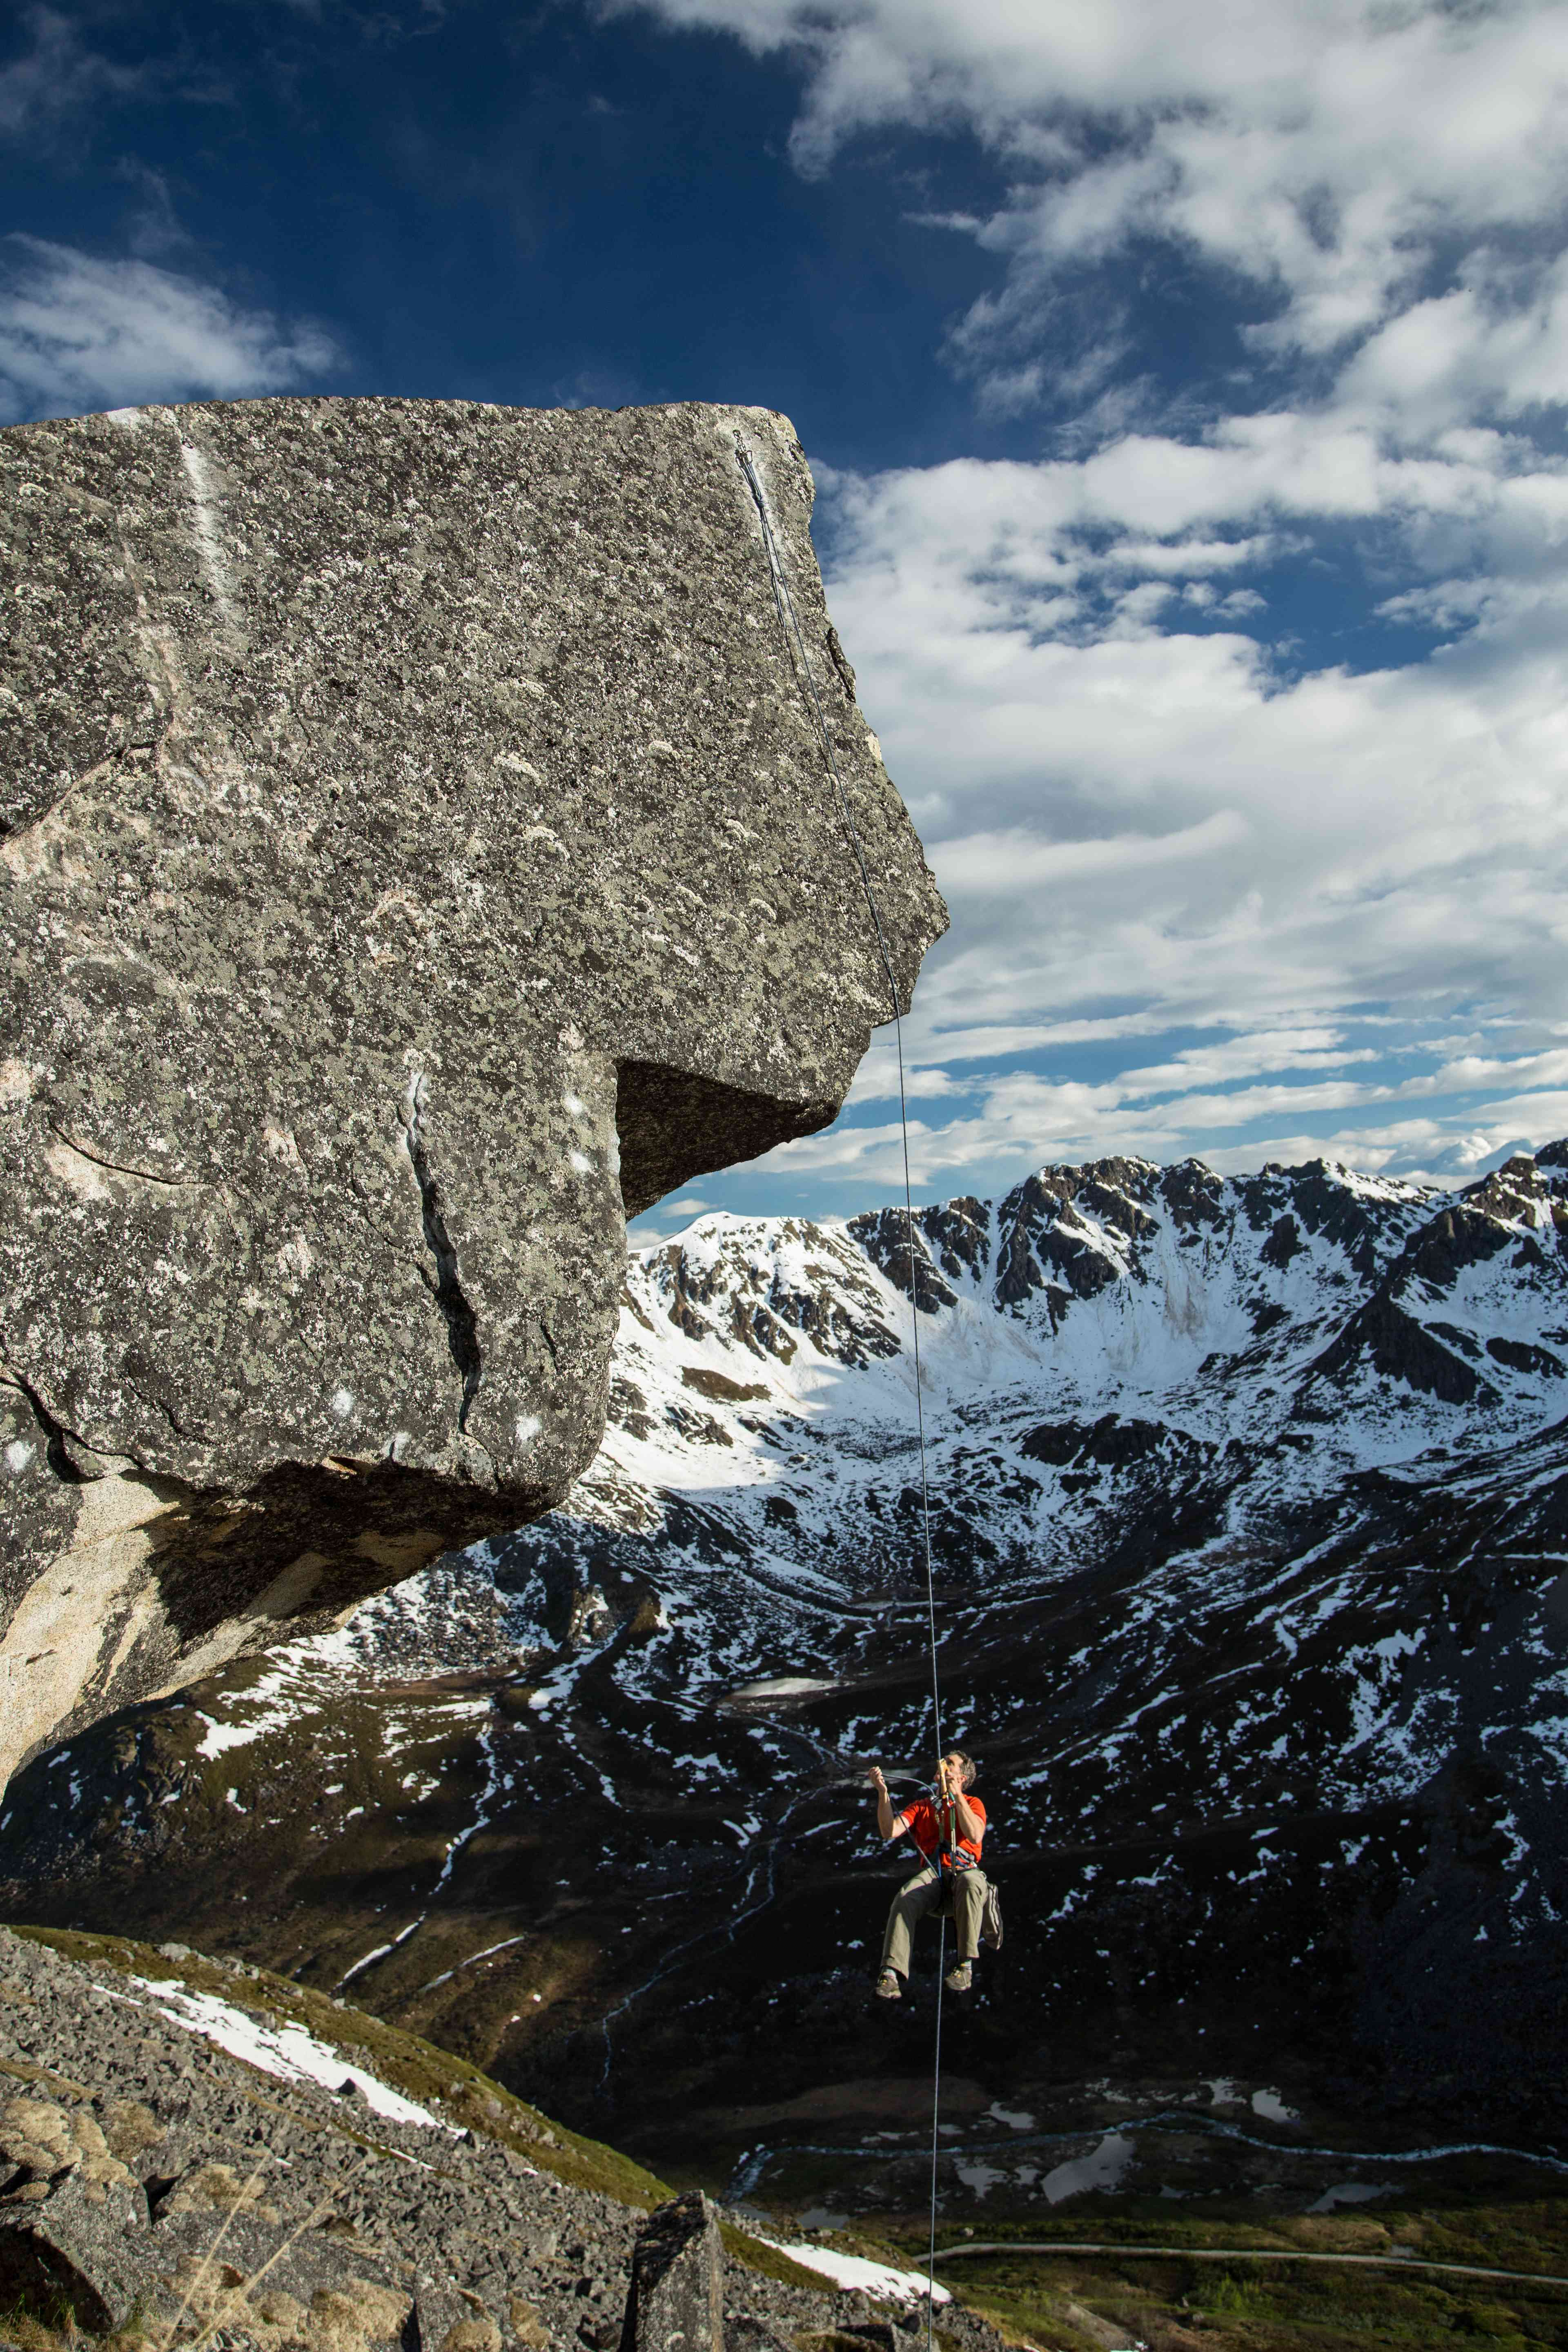 Scouting a climbing route at Hatcher Pass